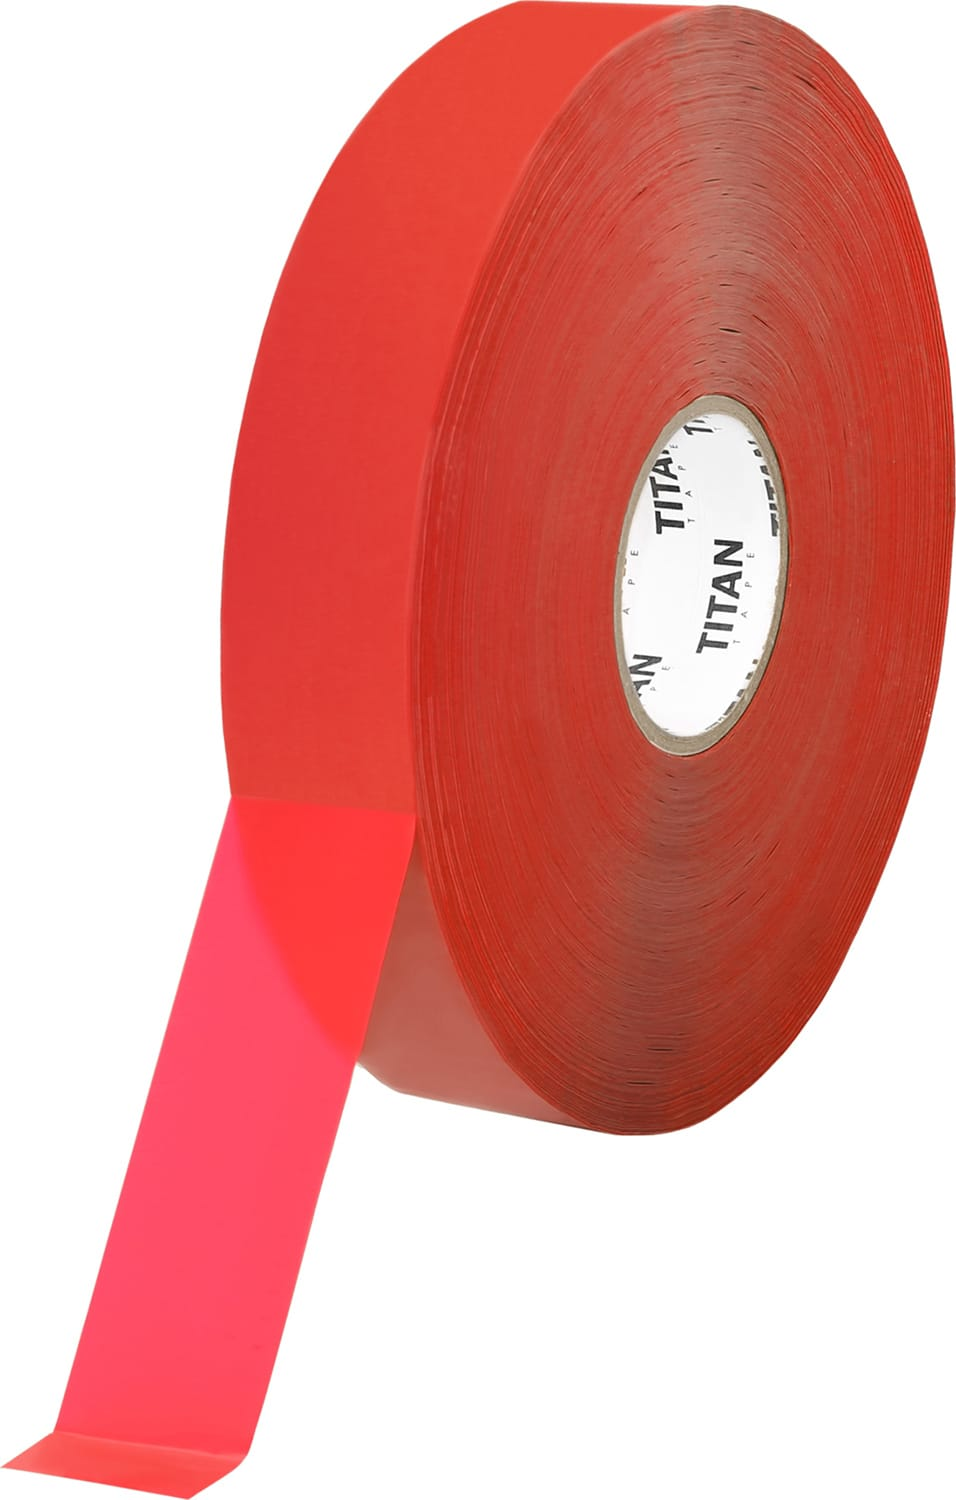 Jumbo Roll of Red Tape